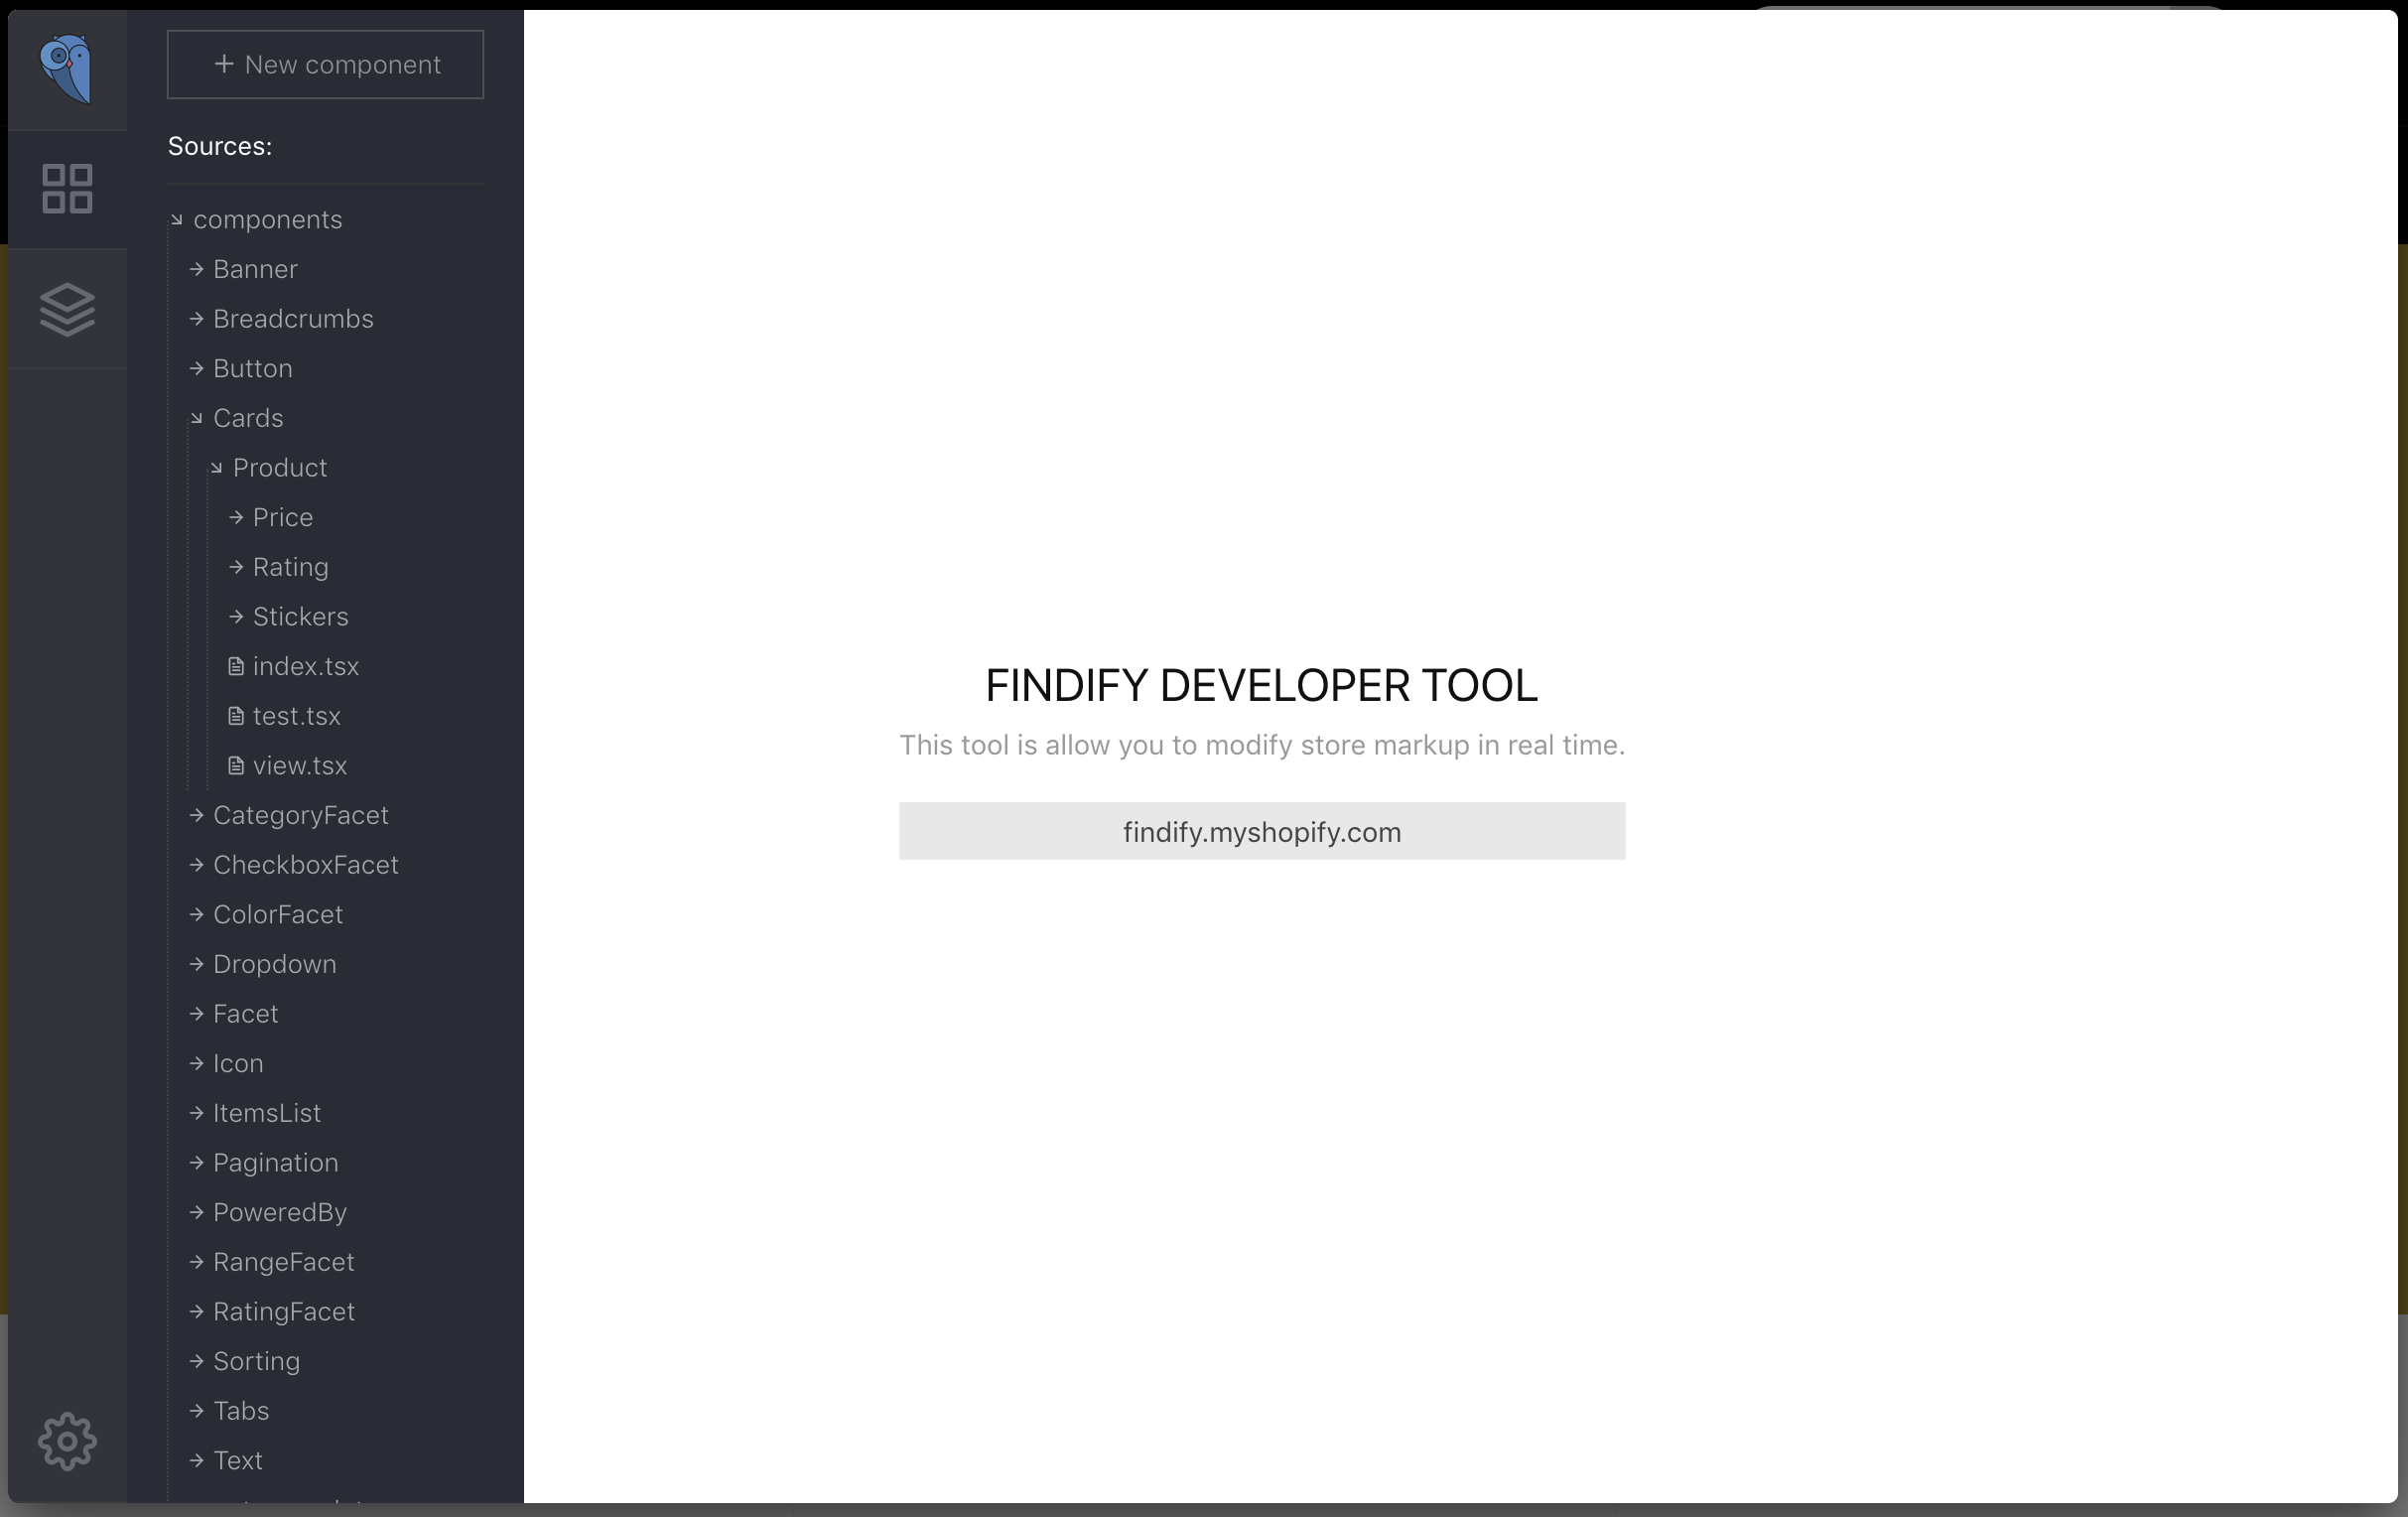 Front page of the Findify Developer Tool